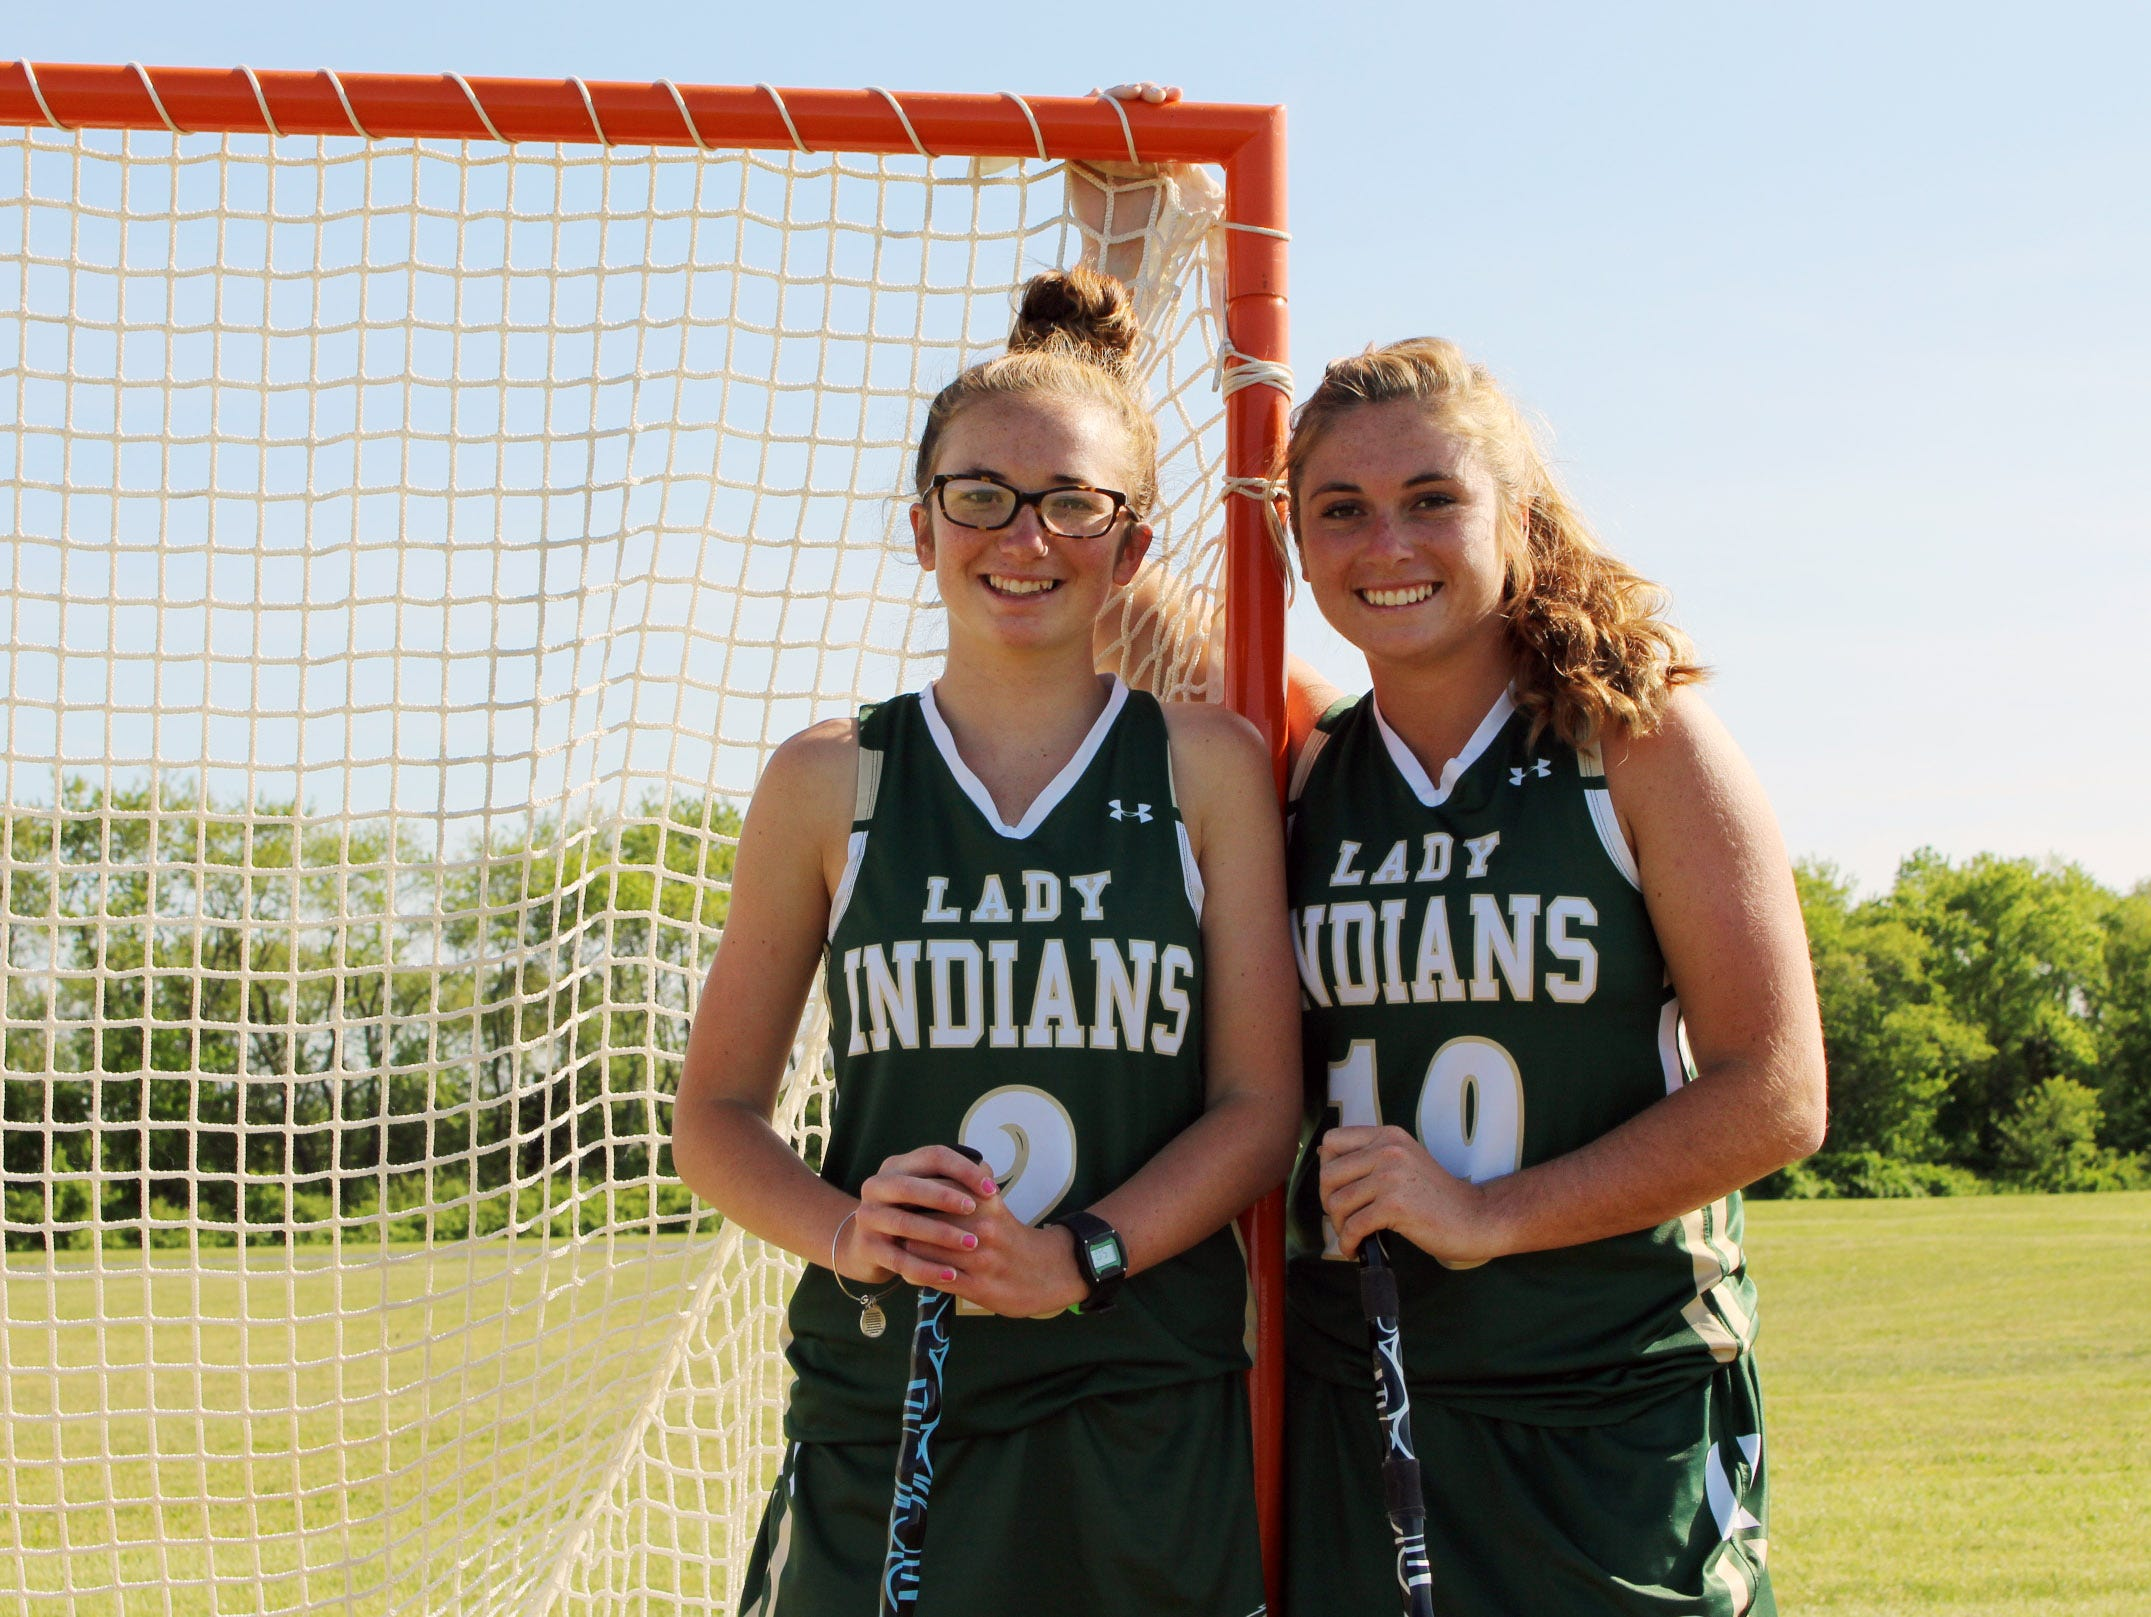 Senior Maggie Allison never got to play lacrosse at her home school, Indian River. Her freshman sister, Kealey Allison, never thought she would play with her older sister, but the addition of the lacrosse program was just in time for these two sisters.